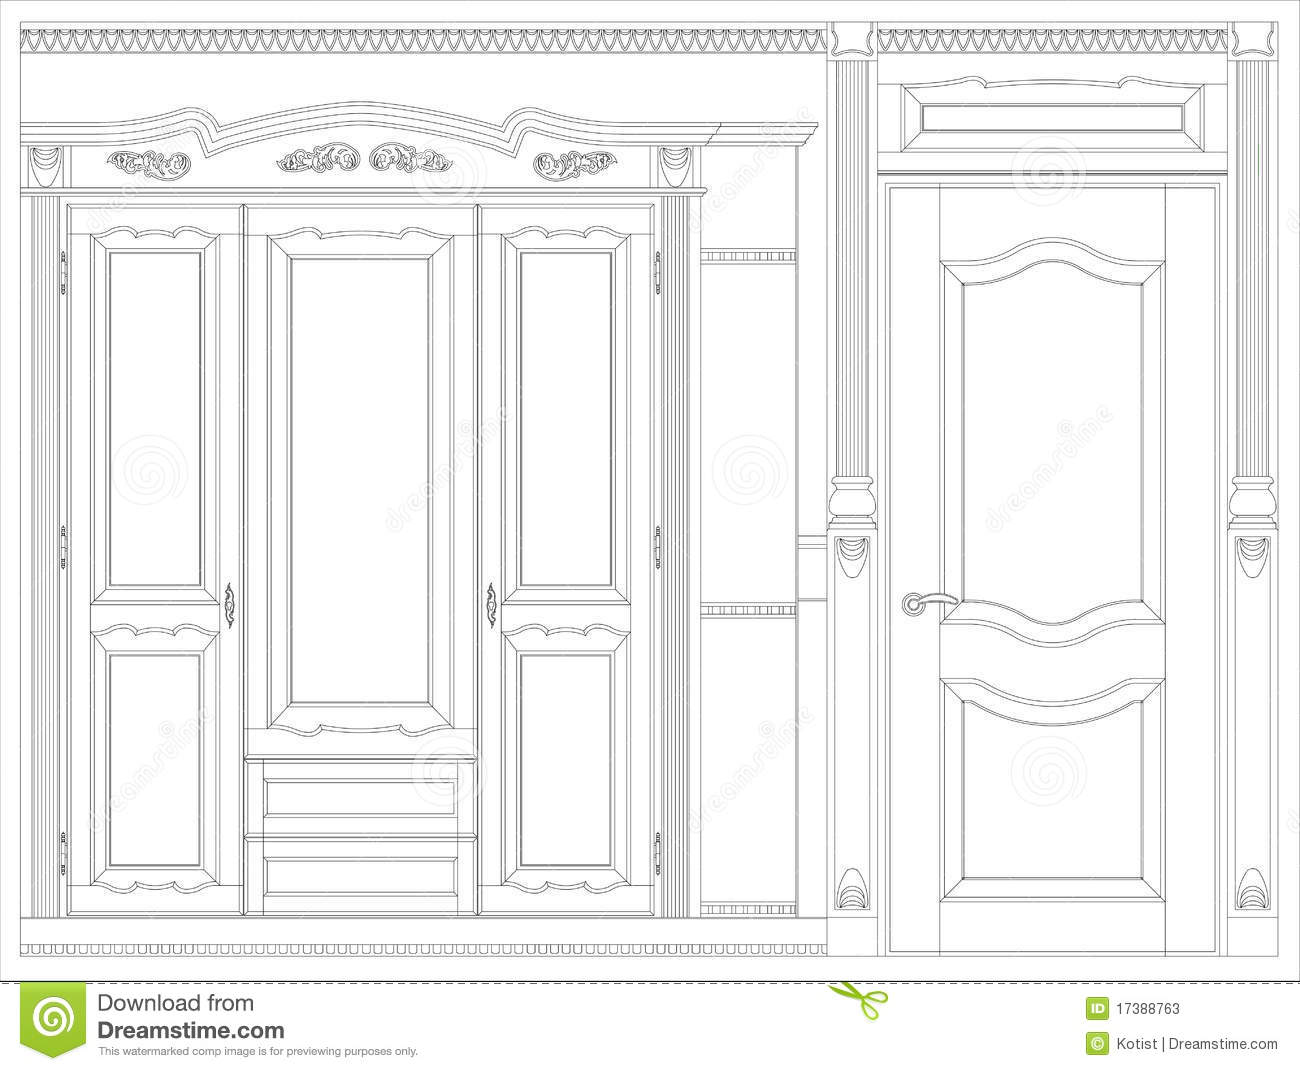 Wood furniture blueprint stock illustration illustration of wood furniture blueprint malvernweather Choice Image